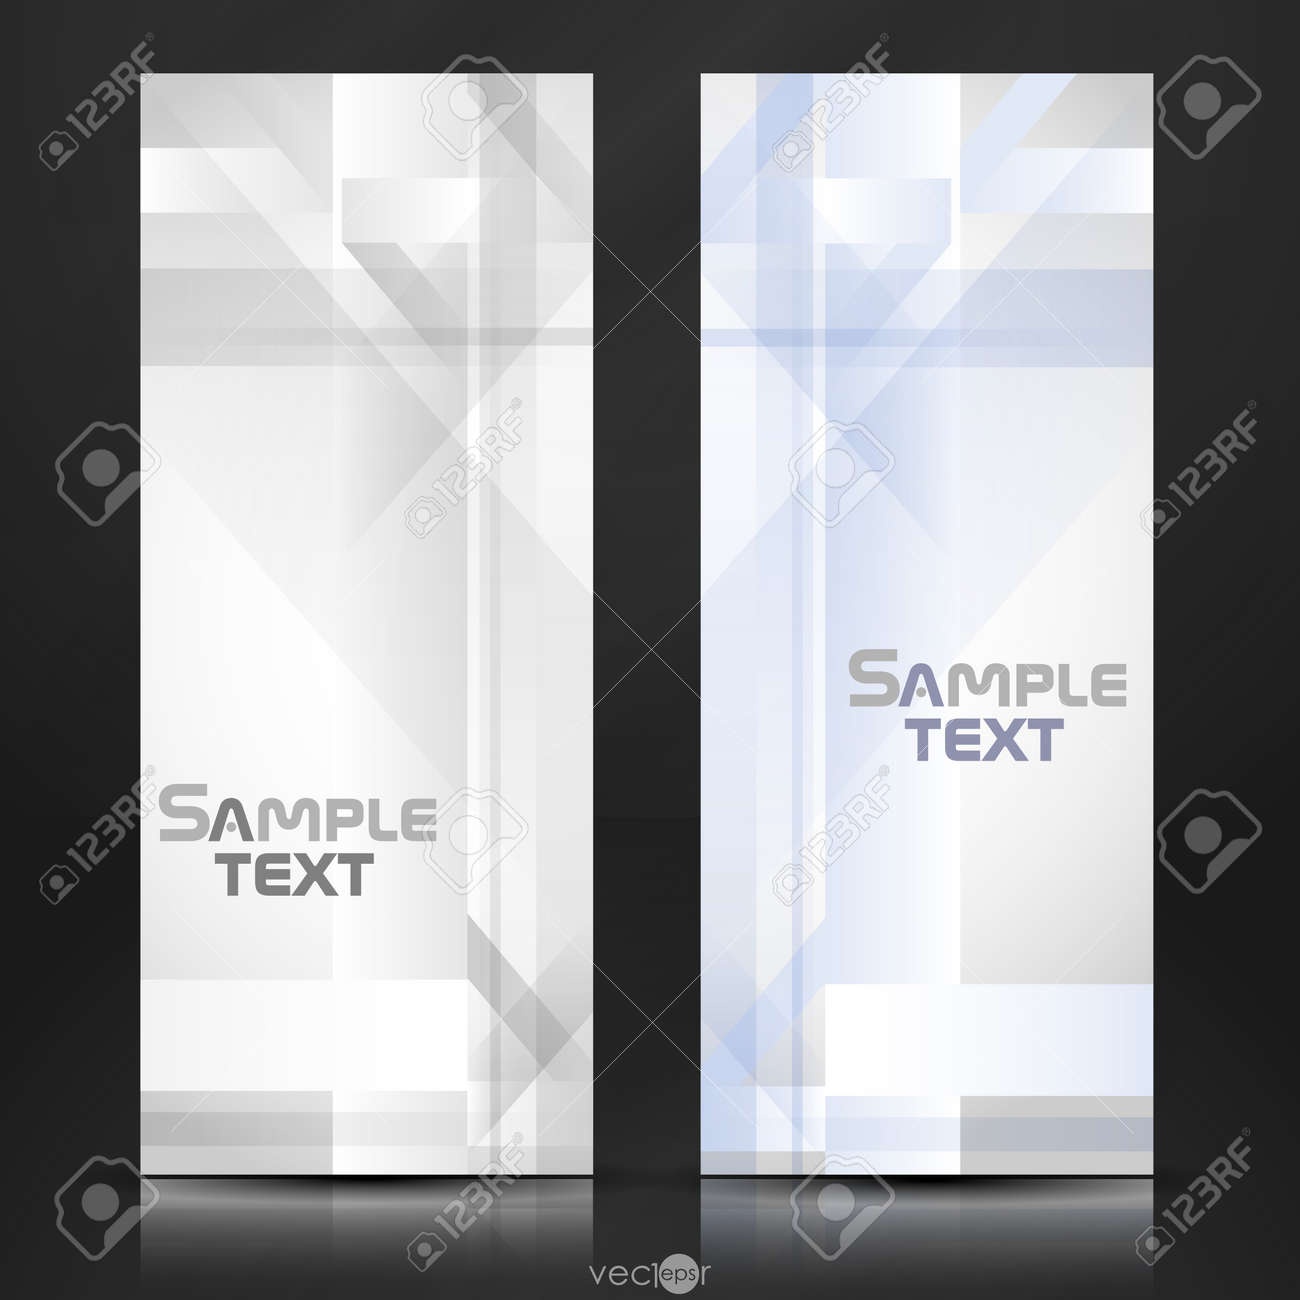 Abstract geometric banner   Vector illustration Stock Vector - 20992621